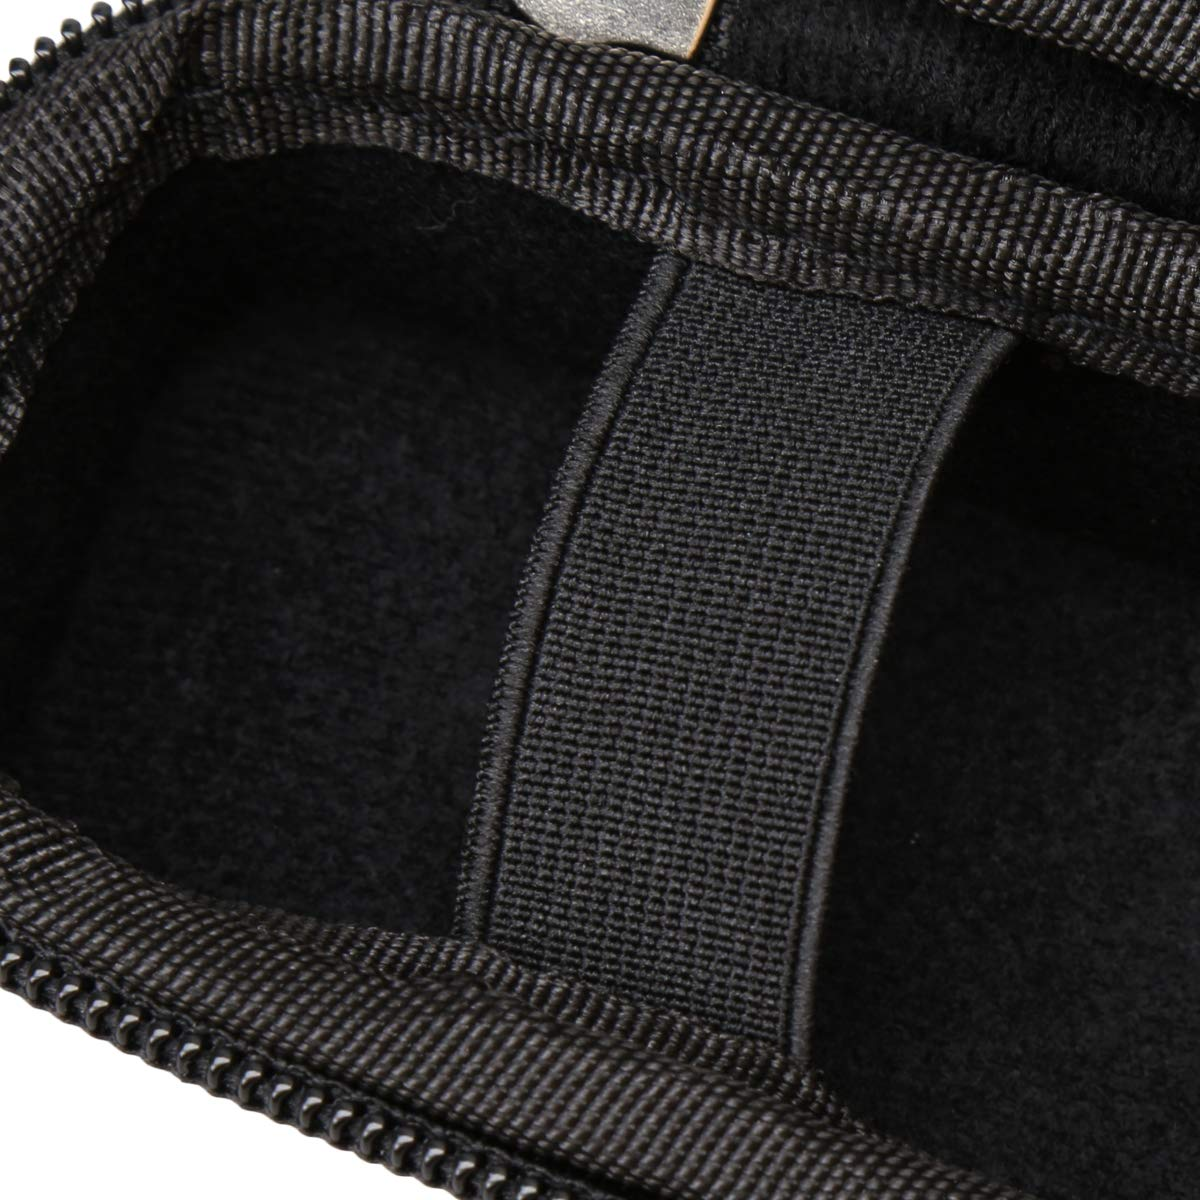 Hard Carrying Travel Case Bag for QQcute Digital Infrared Forehead Thermometer by Aproca by Aproca (Image #5)